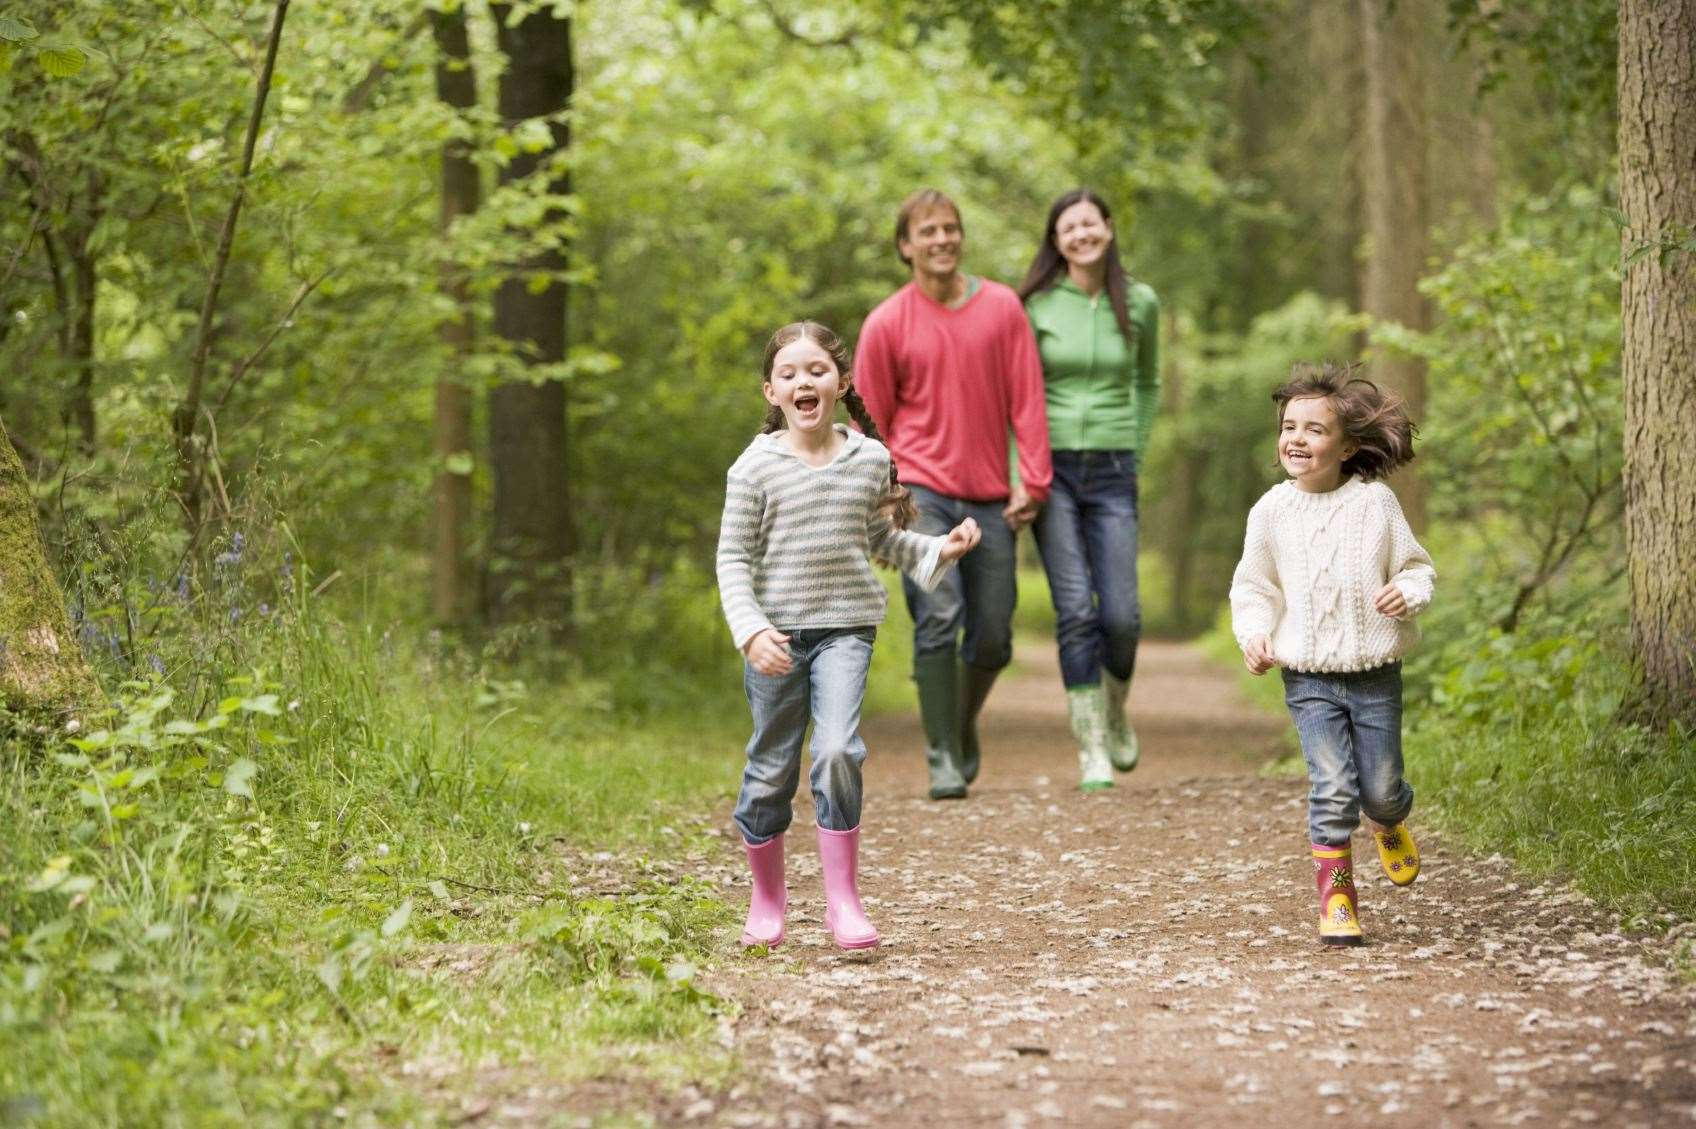 Get walking with some of the 50 walks on offer